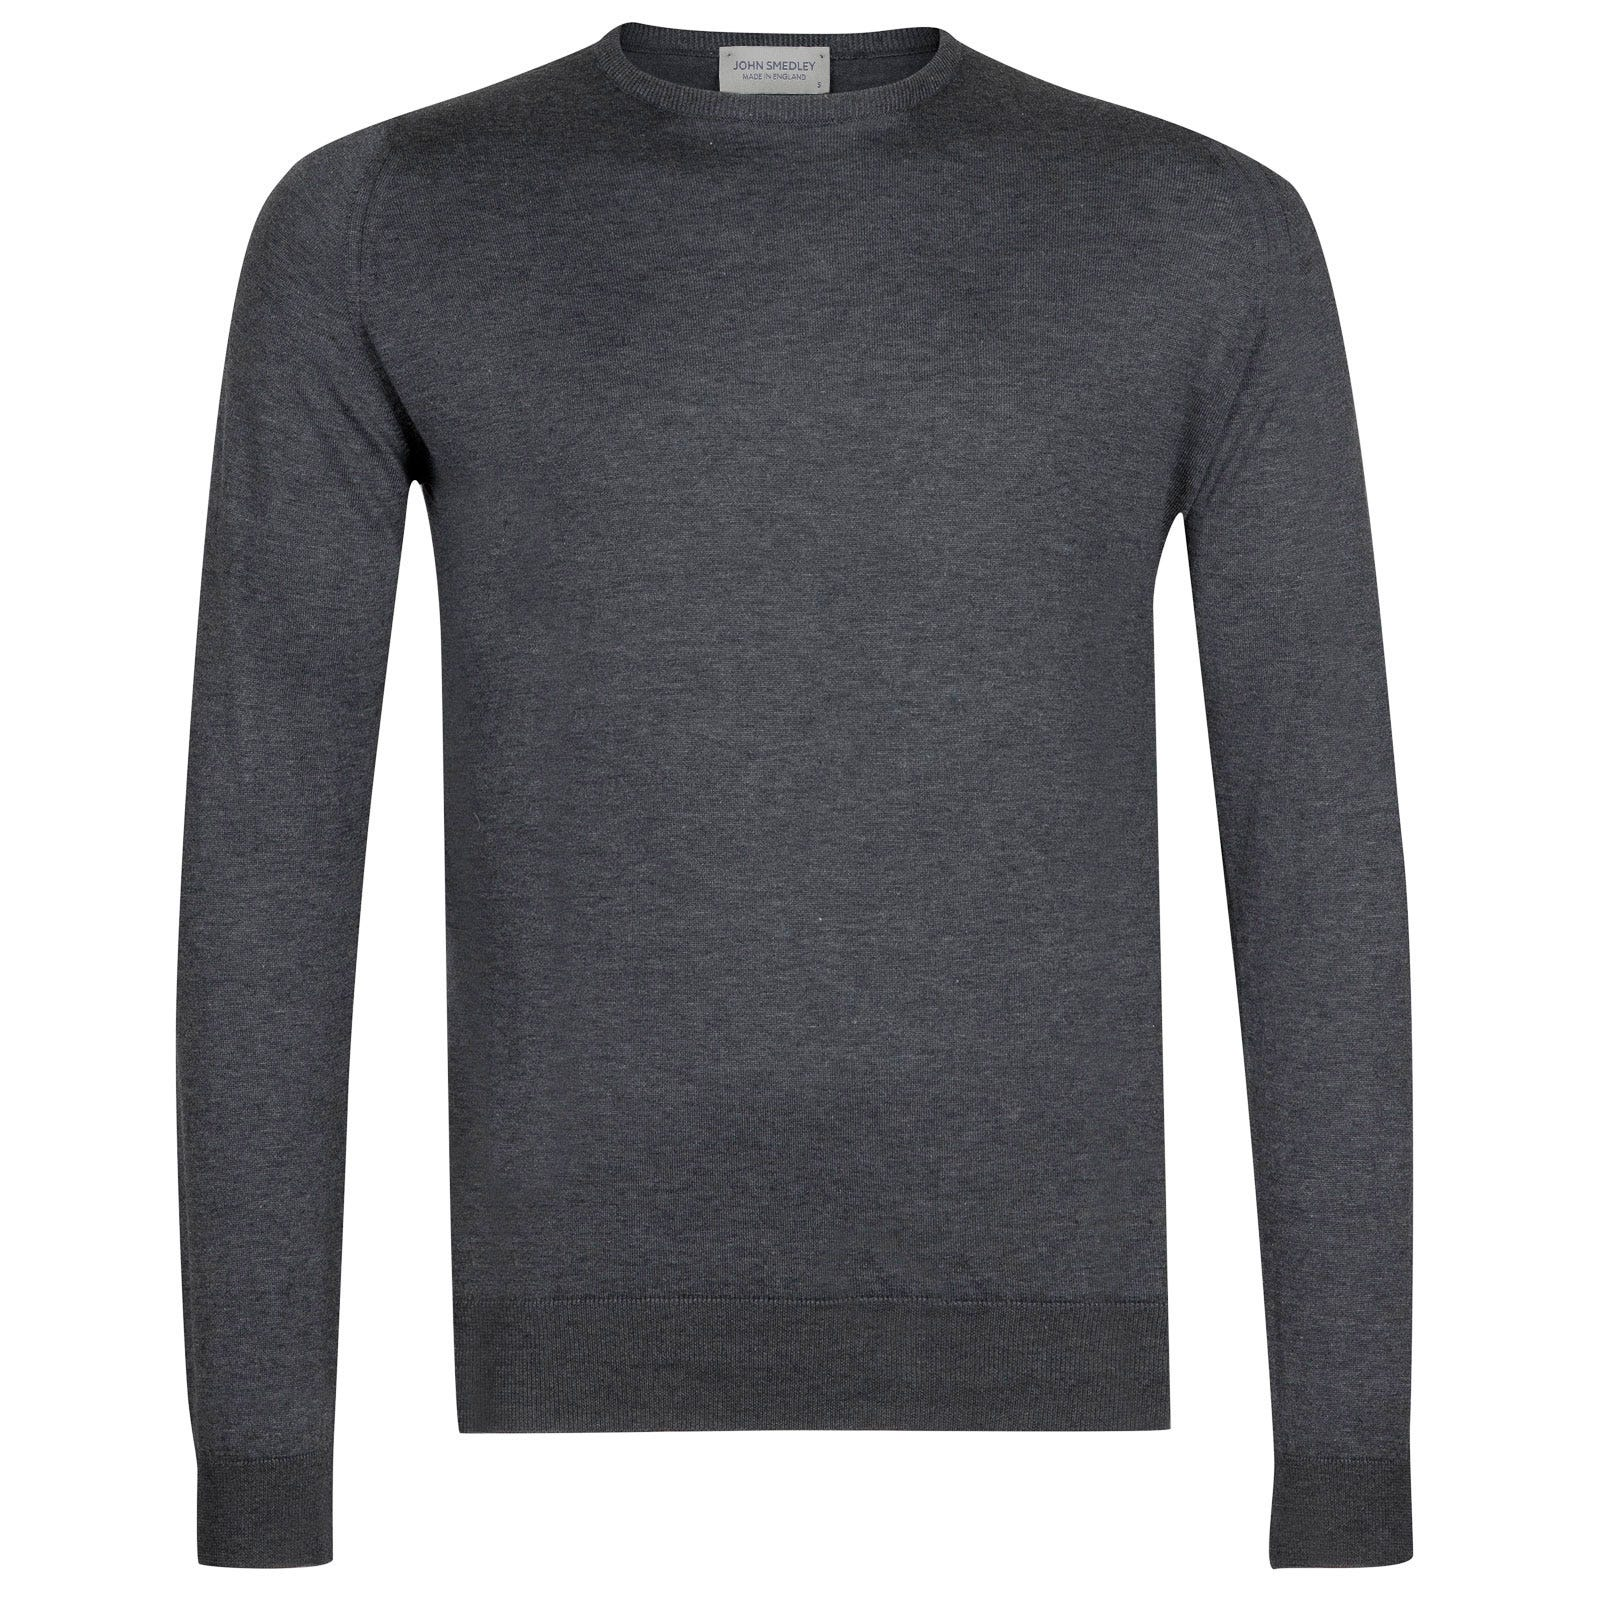 John Smedley hatfield Sea Island Cotton Pullover in Charcoal-S